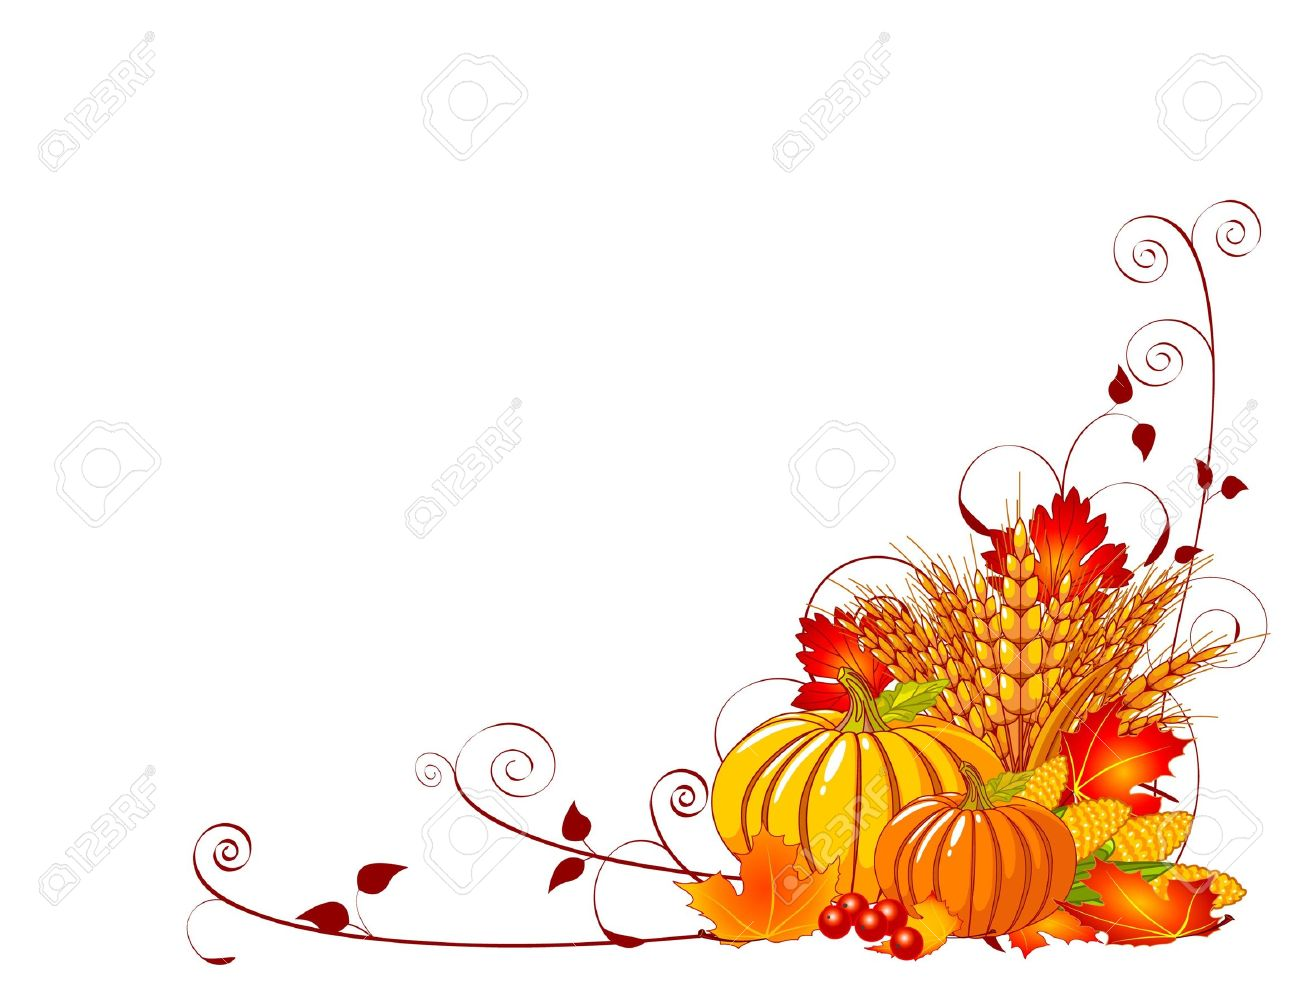 Seasonal background with plump pumpkins, wheat, corn and autumn leaves Stock Vector - 7911697